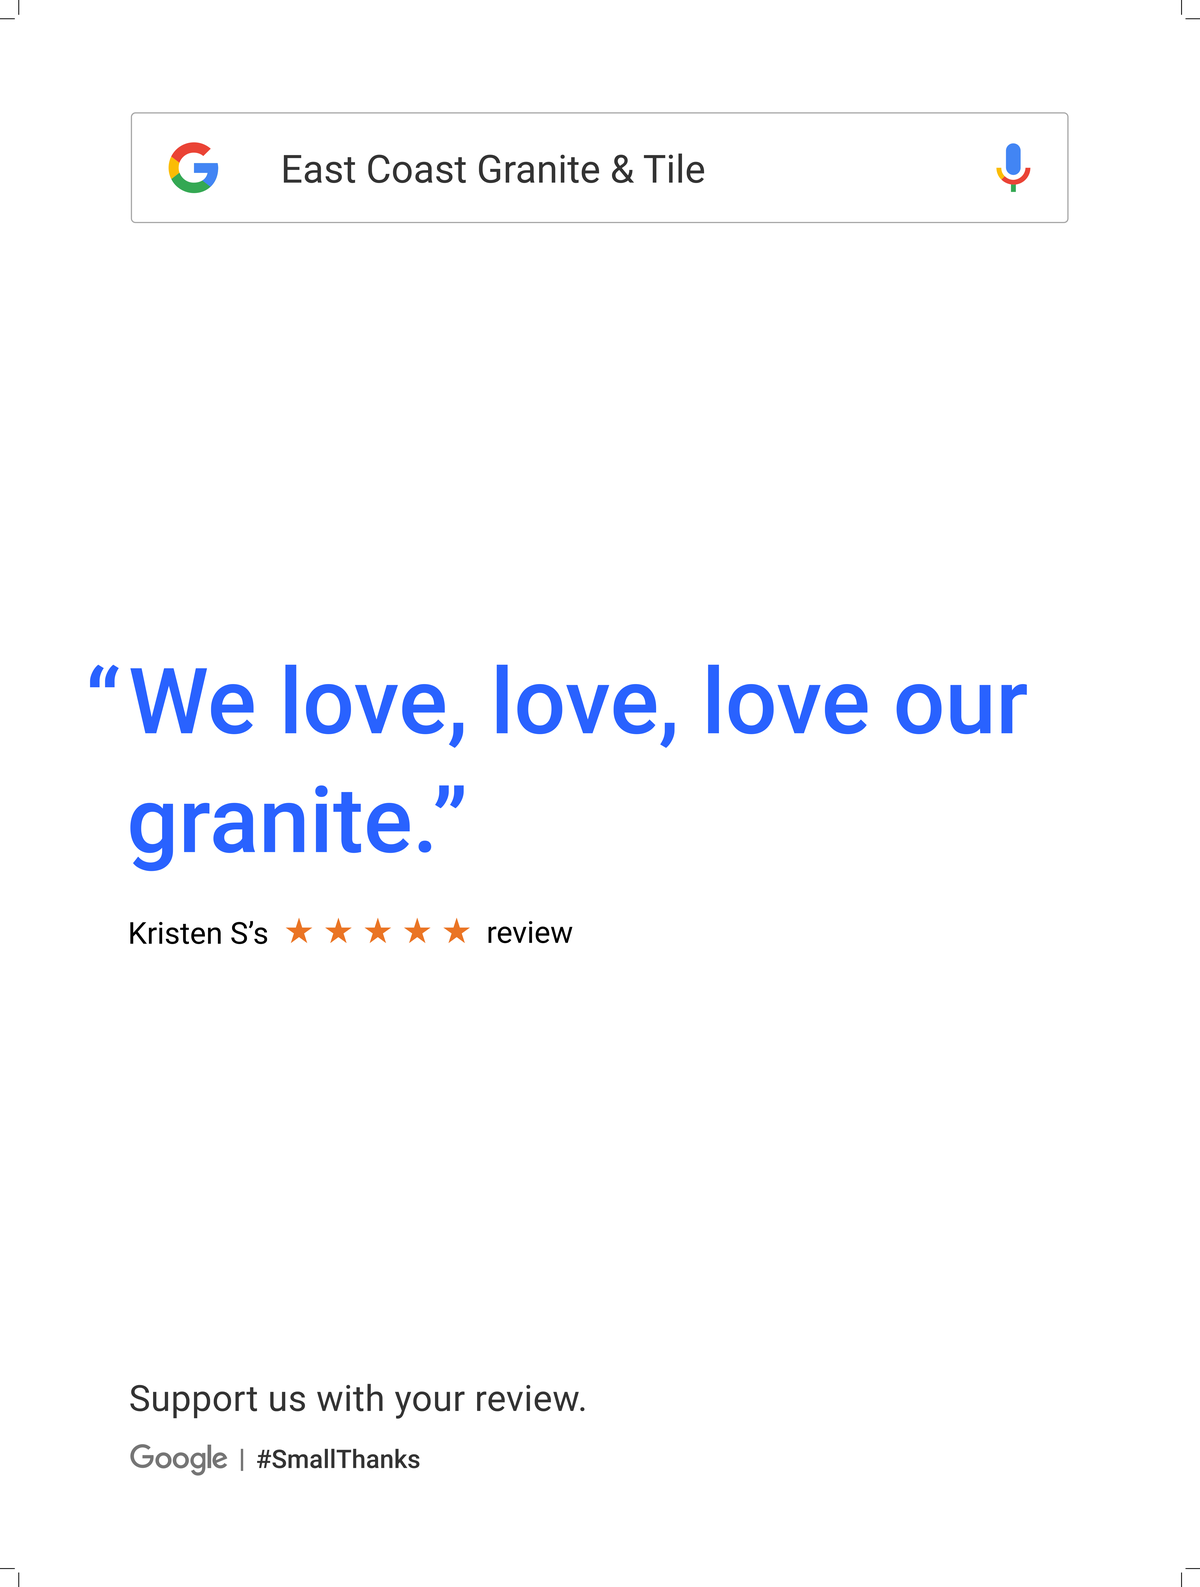 Google Review Greenville from Kristen S - We love, love, love our granite